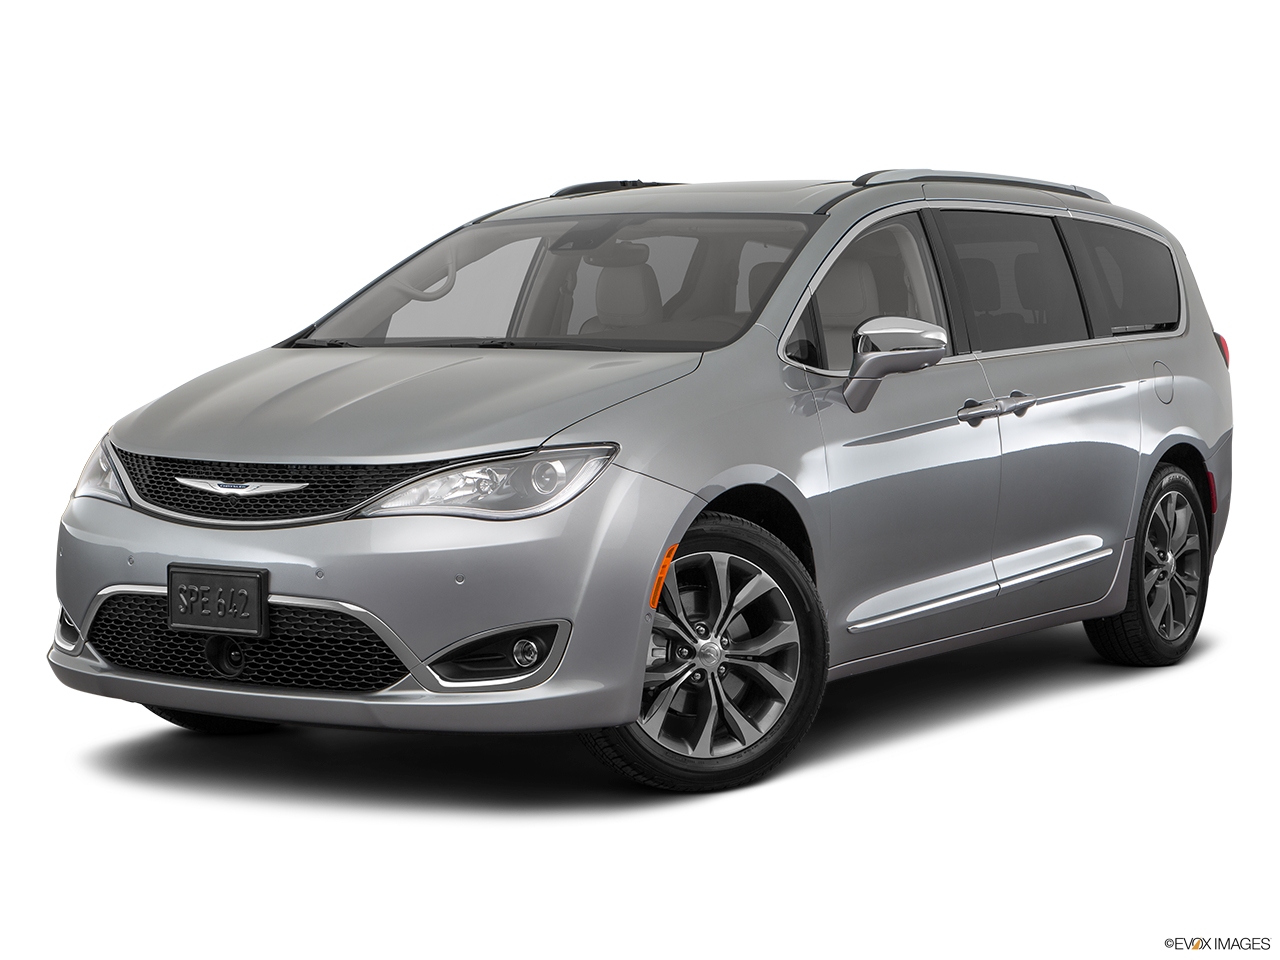 Test Drive A 2017 Chrysler Pacifica at Landmark Chrysler Dodge Jeep RAM of Morrow near Atlanta